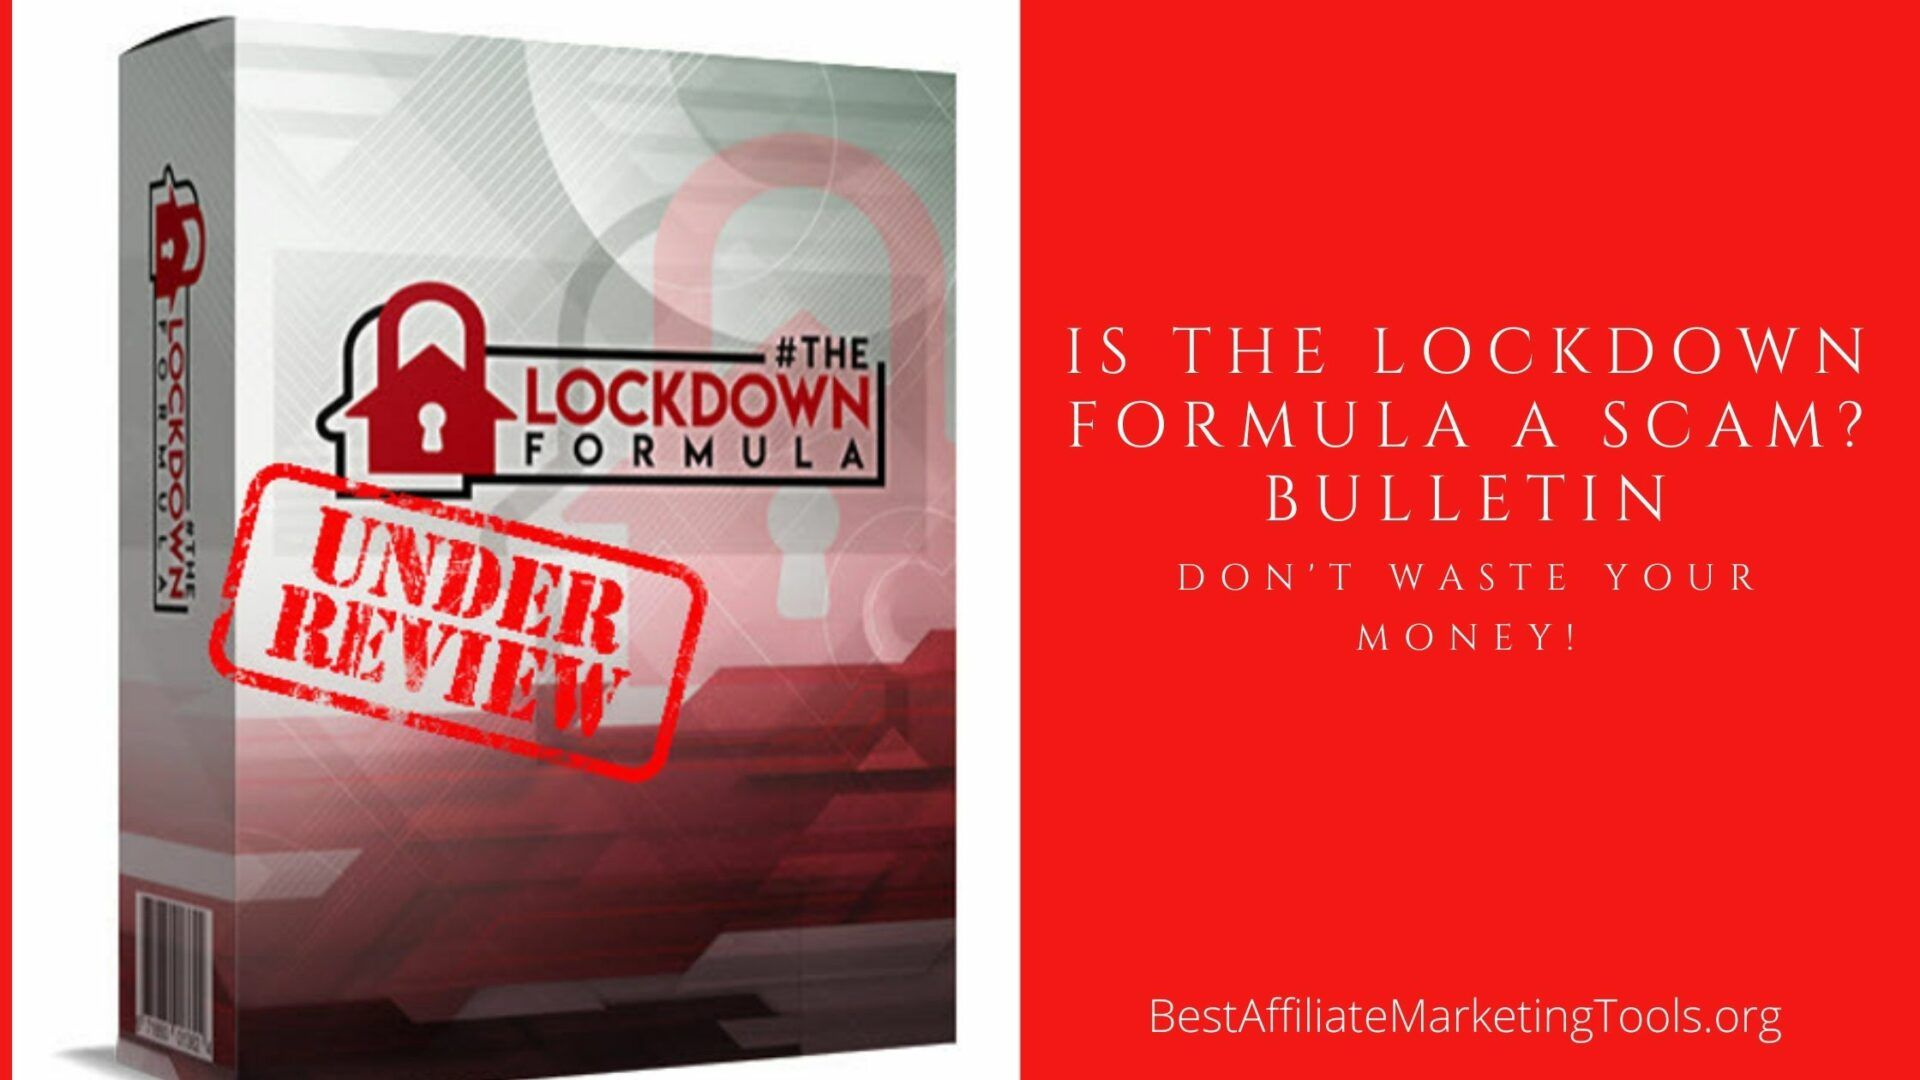 Is The Lockdown Formula A Scam